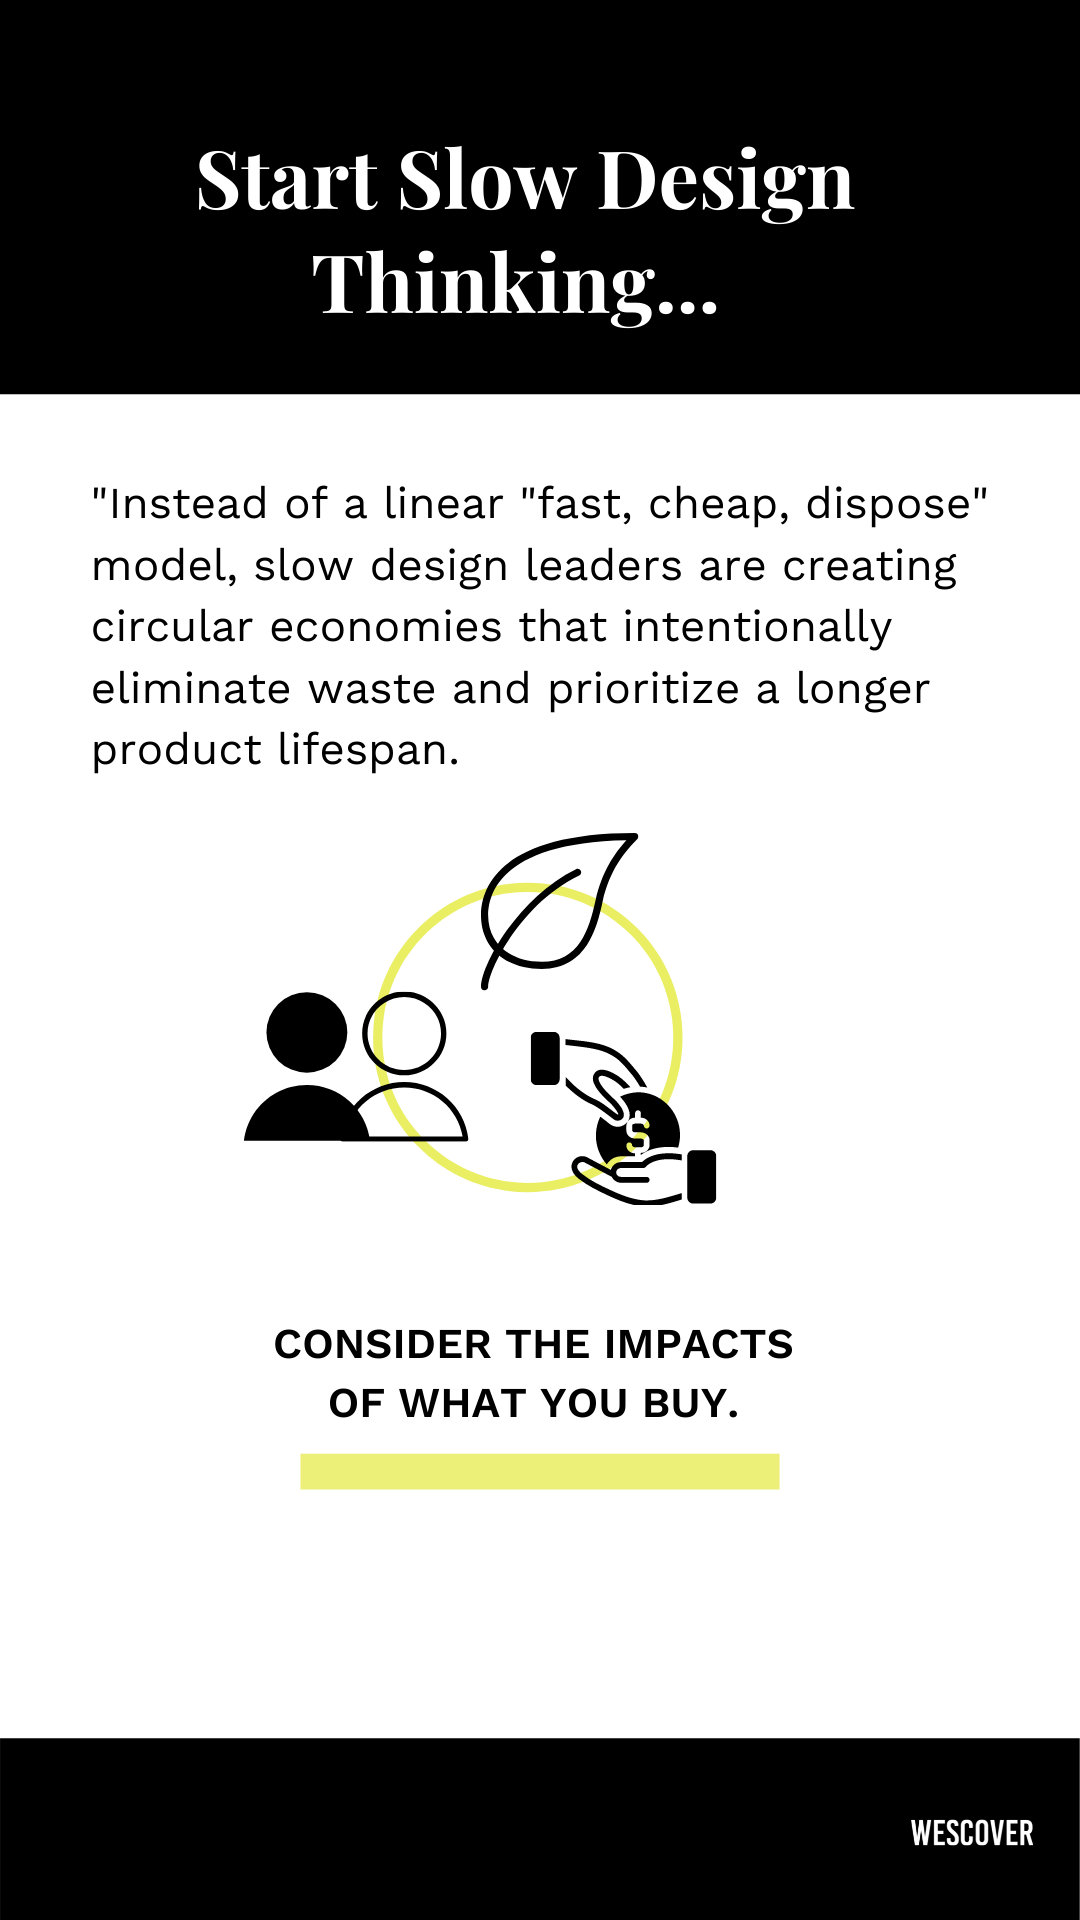 slow design impacts social economic environmental of what you buy